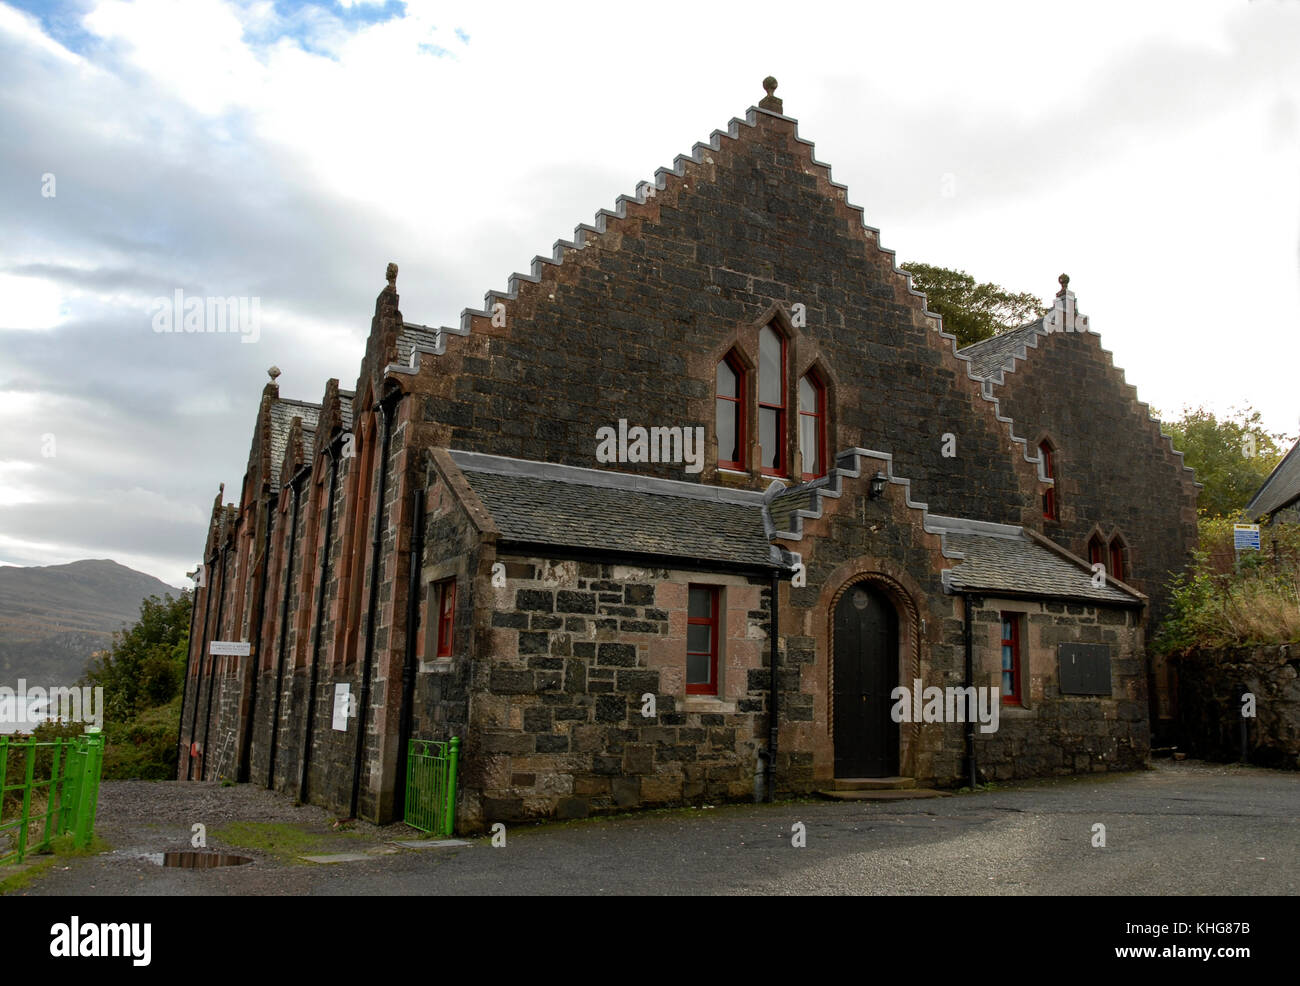 Skye's Gathering hall s used for civic functions by the local town council in Porrtree on the Isle of Sky in - Stock Image